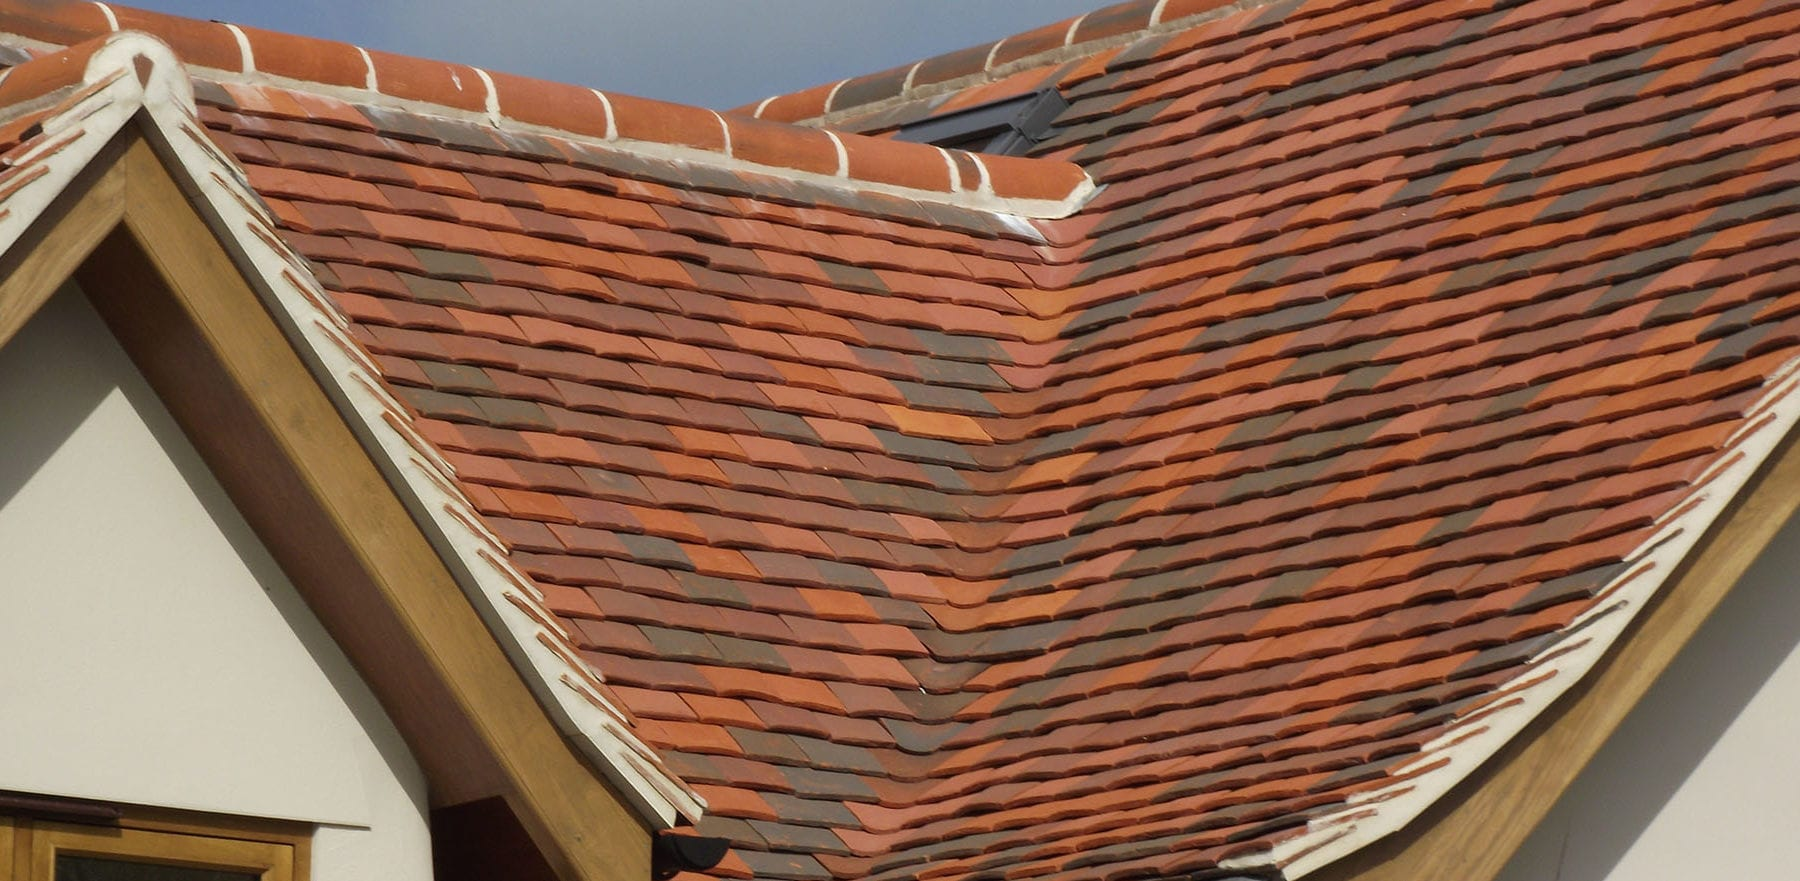 Lifestiles - Handcrafted Tilehurst Clay Roof Tiles - Clavering, England 2